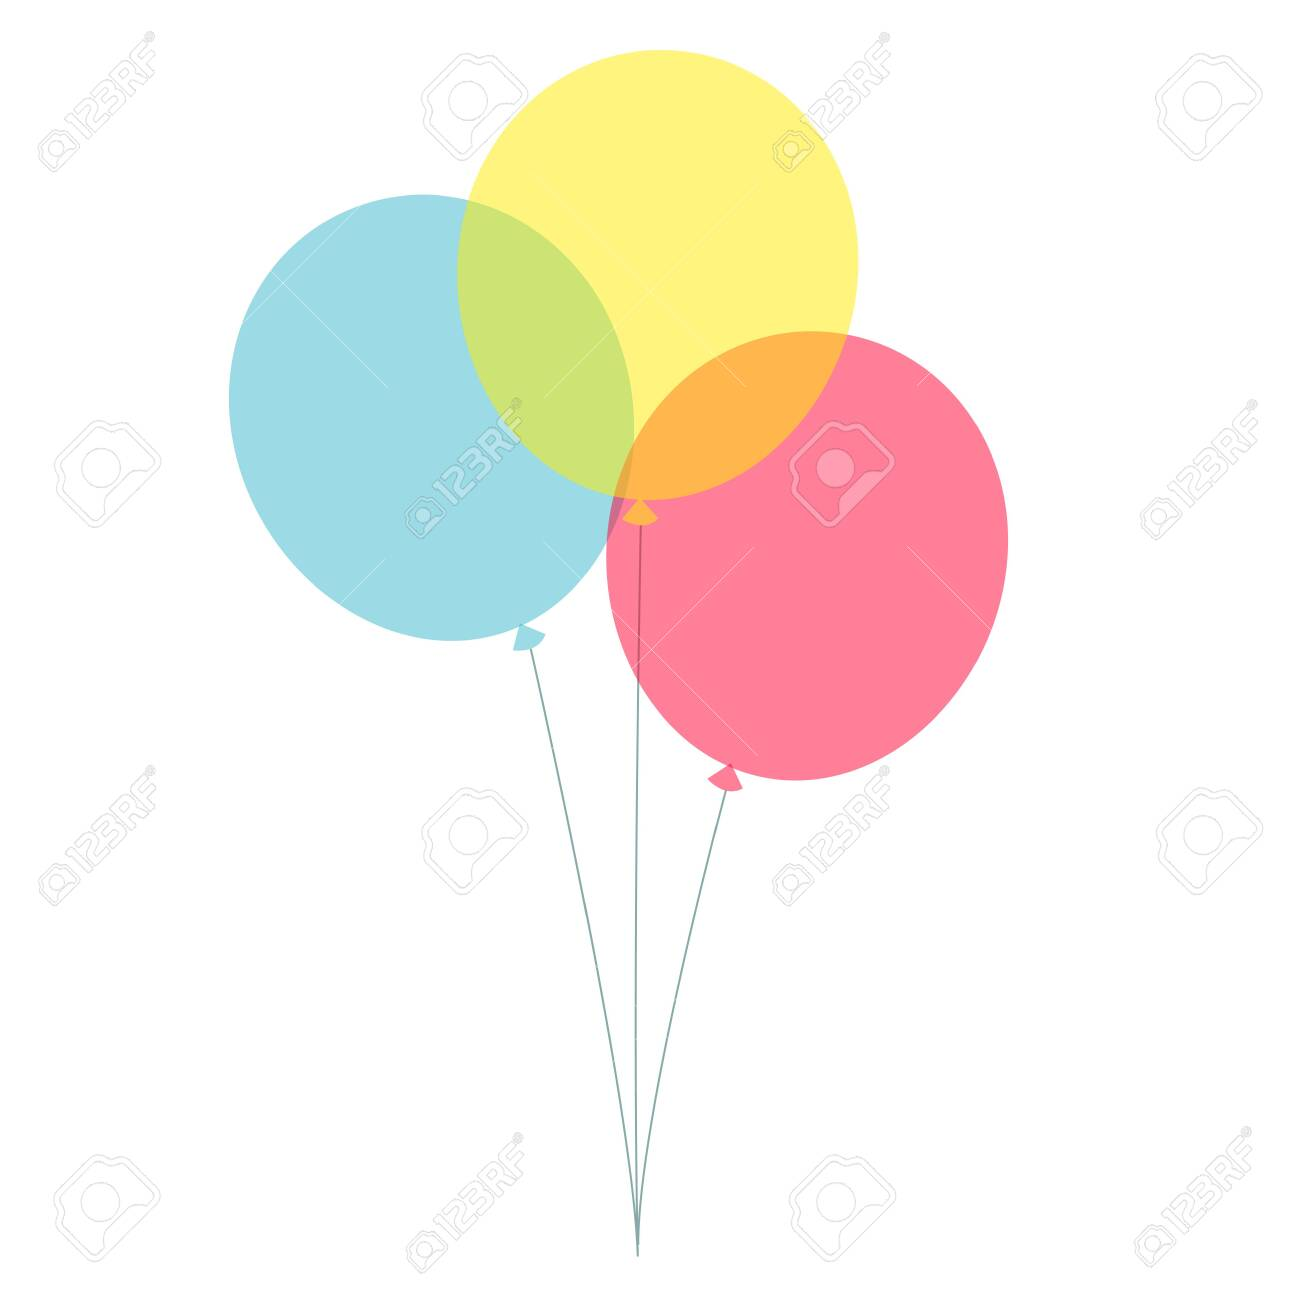 Party balloons simple vector illustration isolated on white background - 144891305